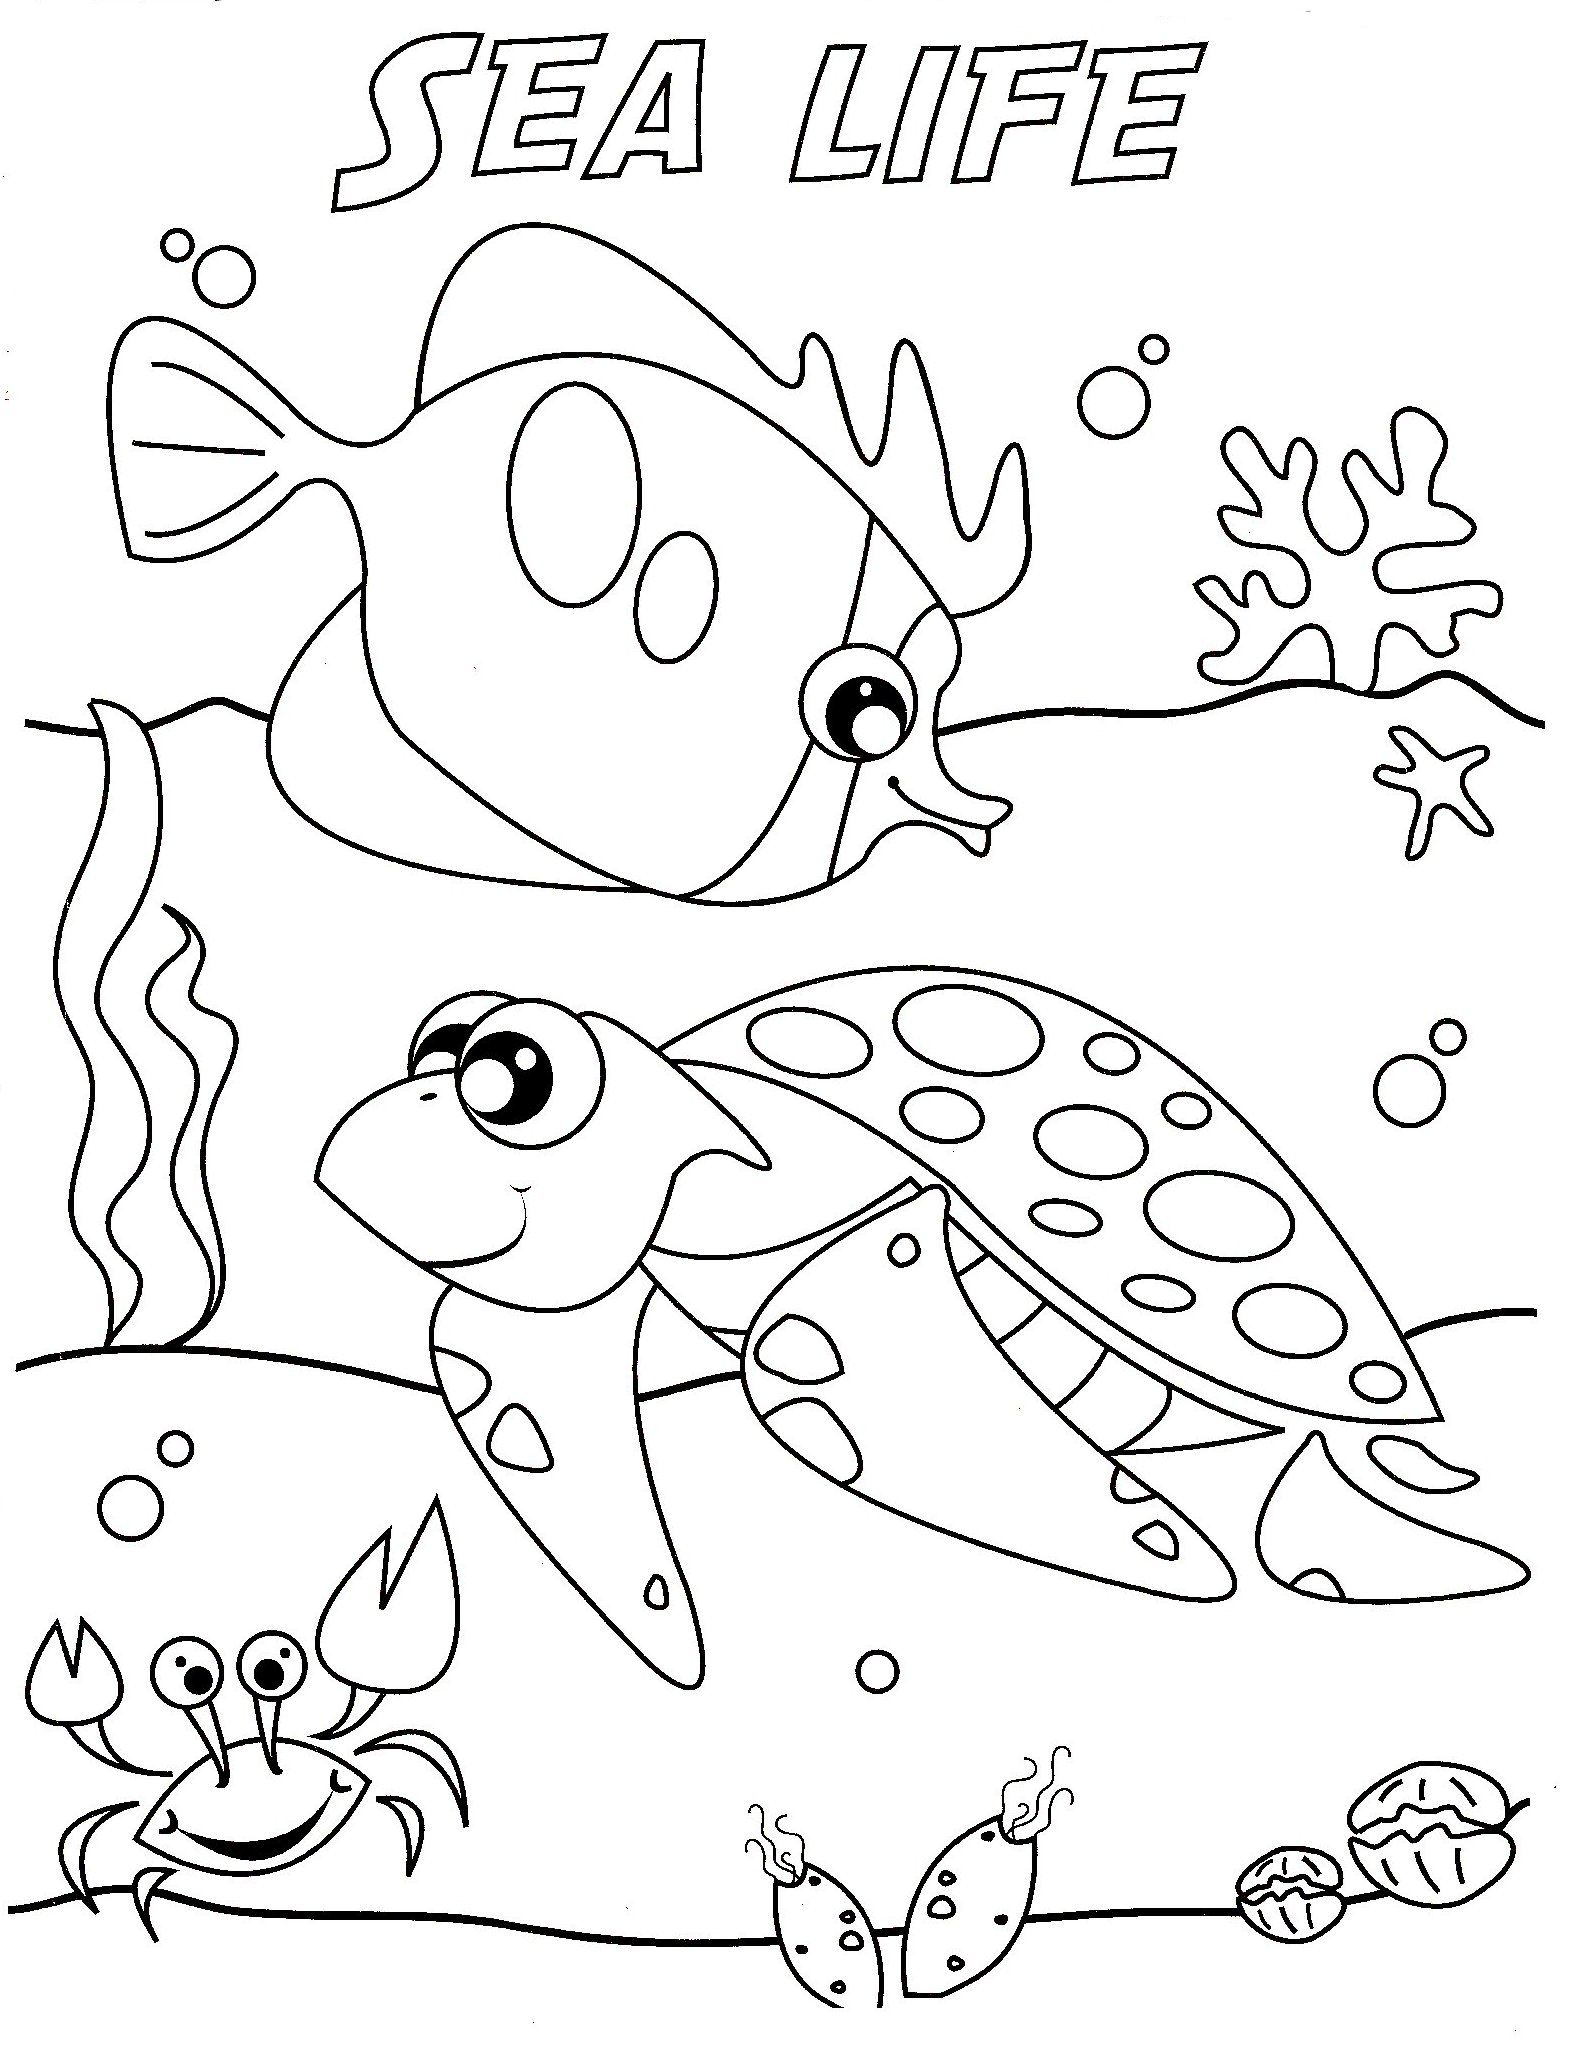 Coloring pages for under the sea - Ocean Waves Coloring Pages Coloring Pages Of Ocean Waves Coloring Under The Sea